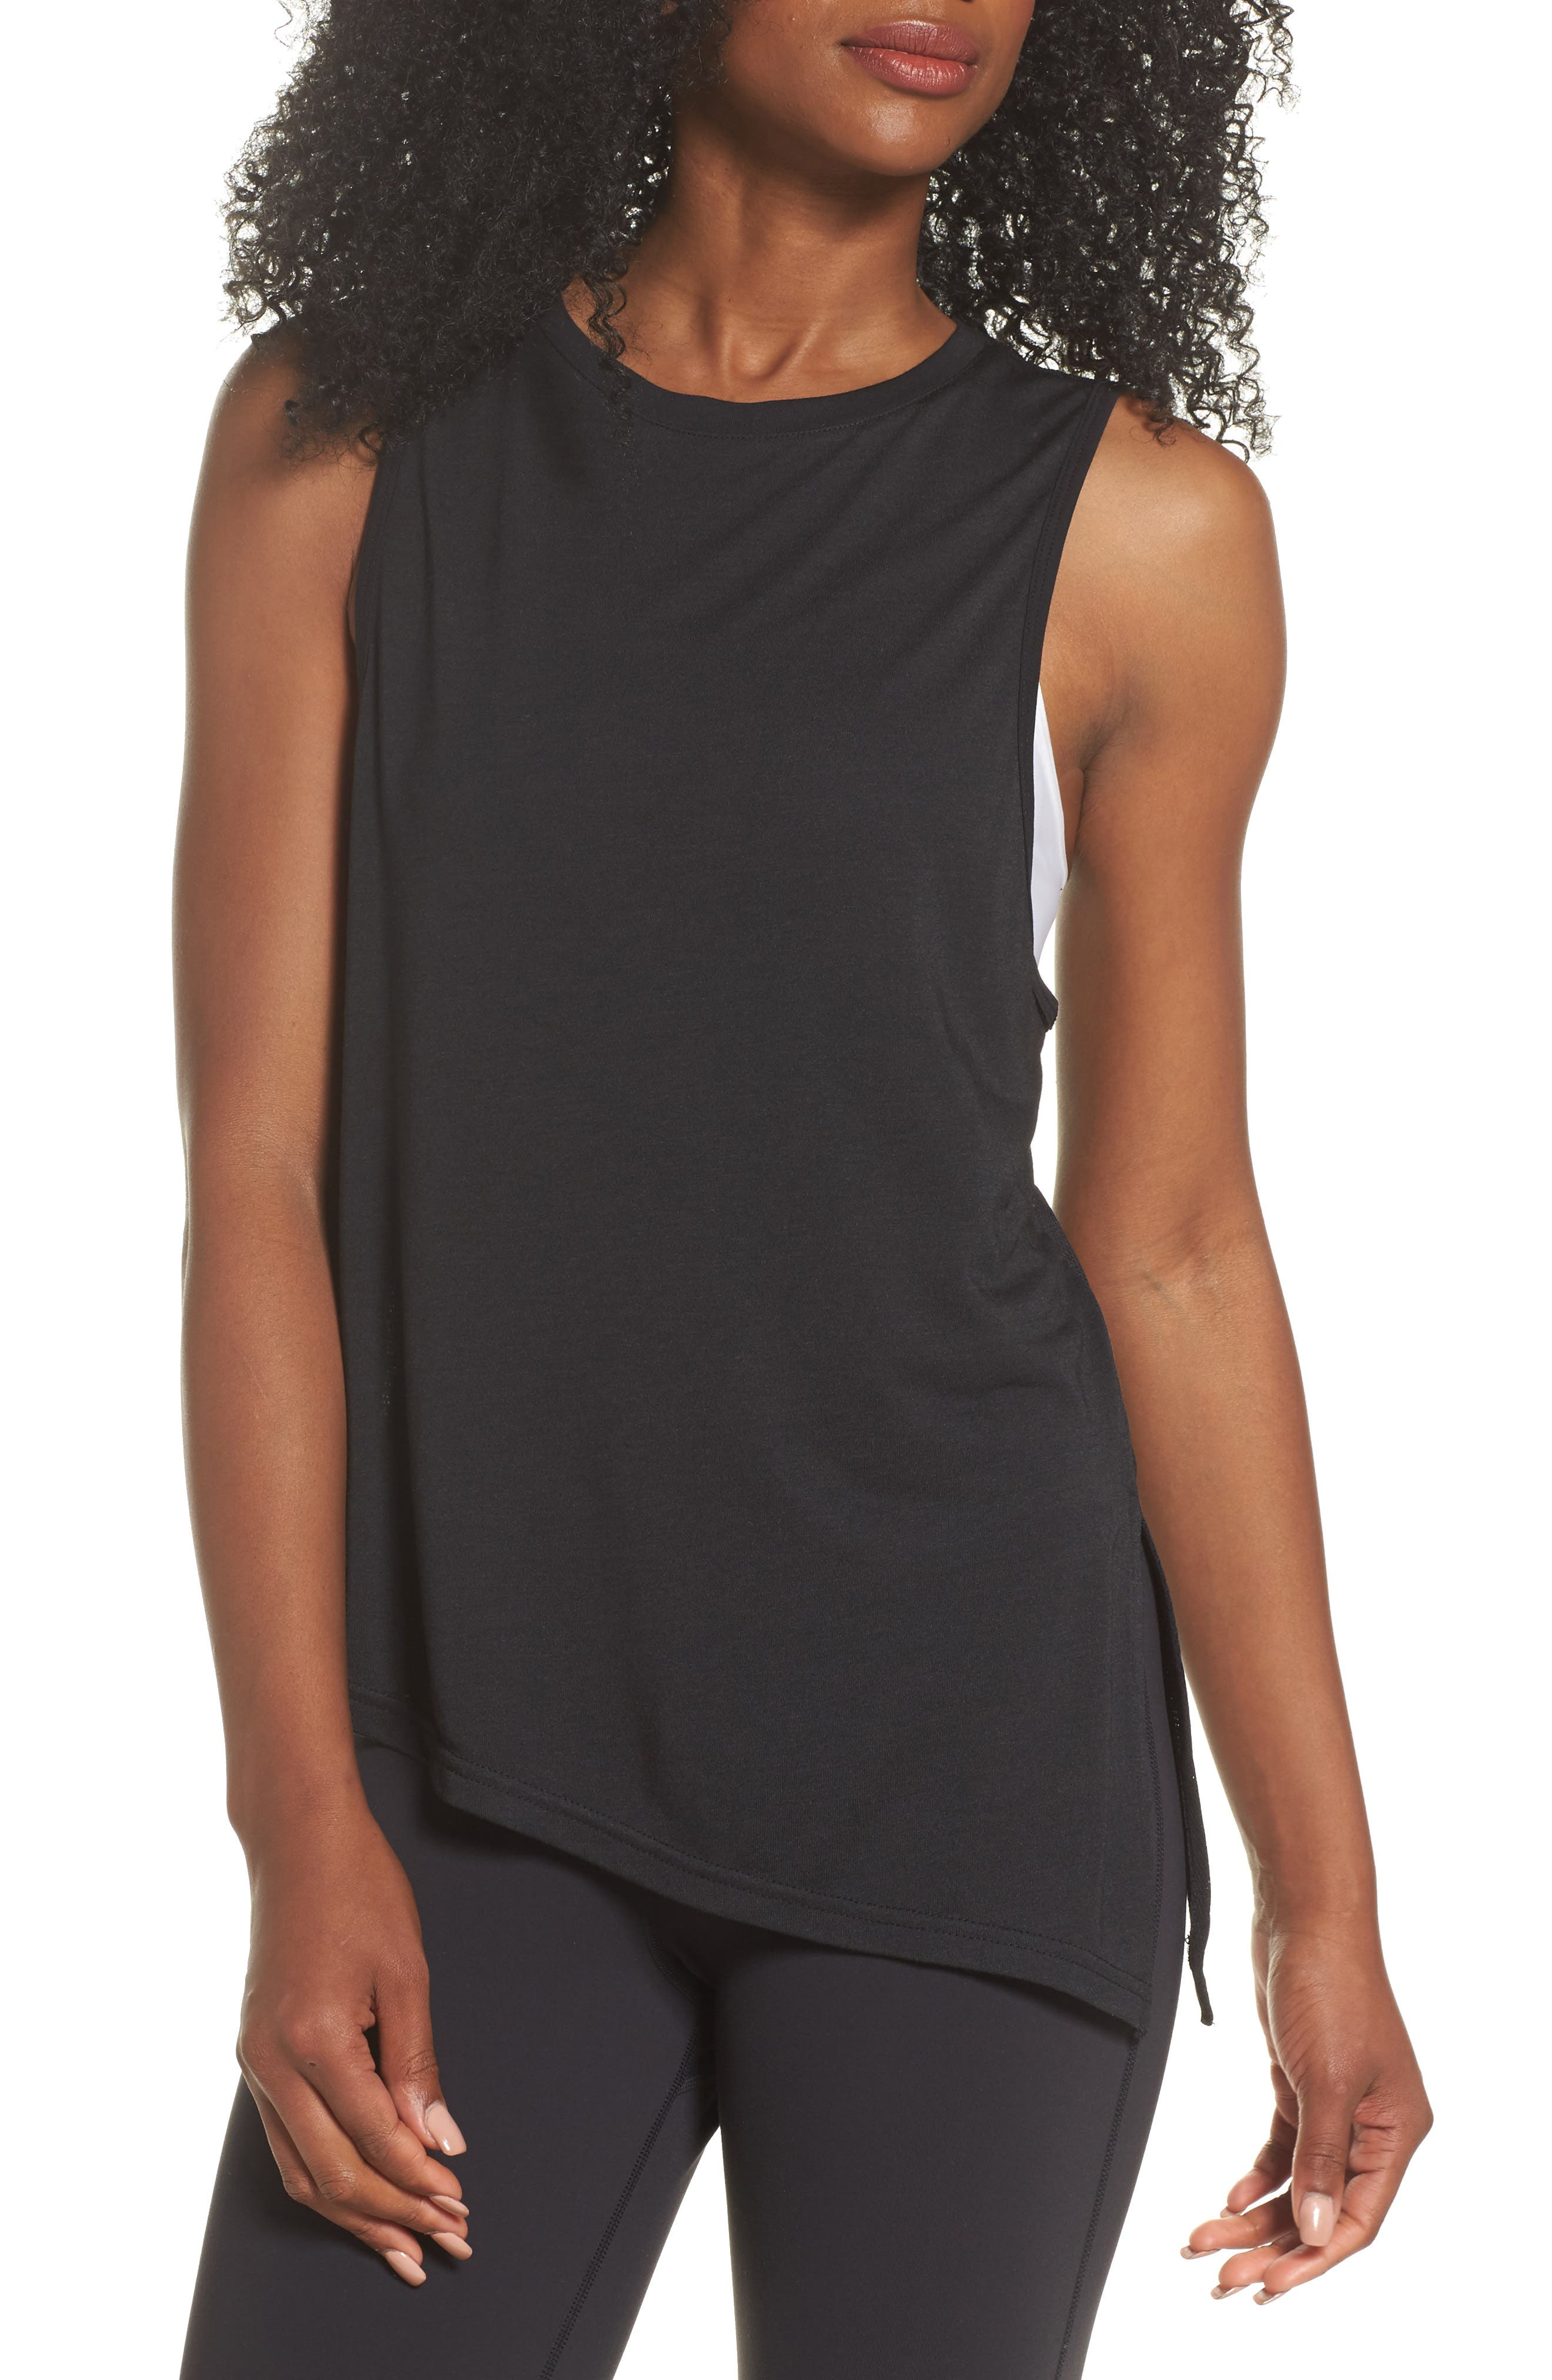 Main Image - Reebok Training Supply Asymmetrical Tank